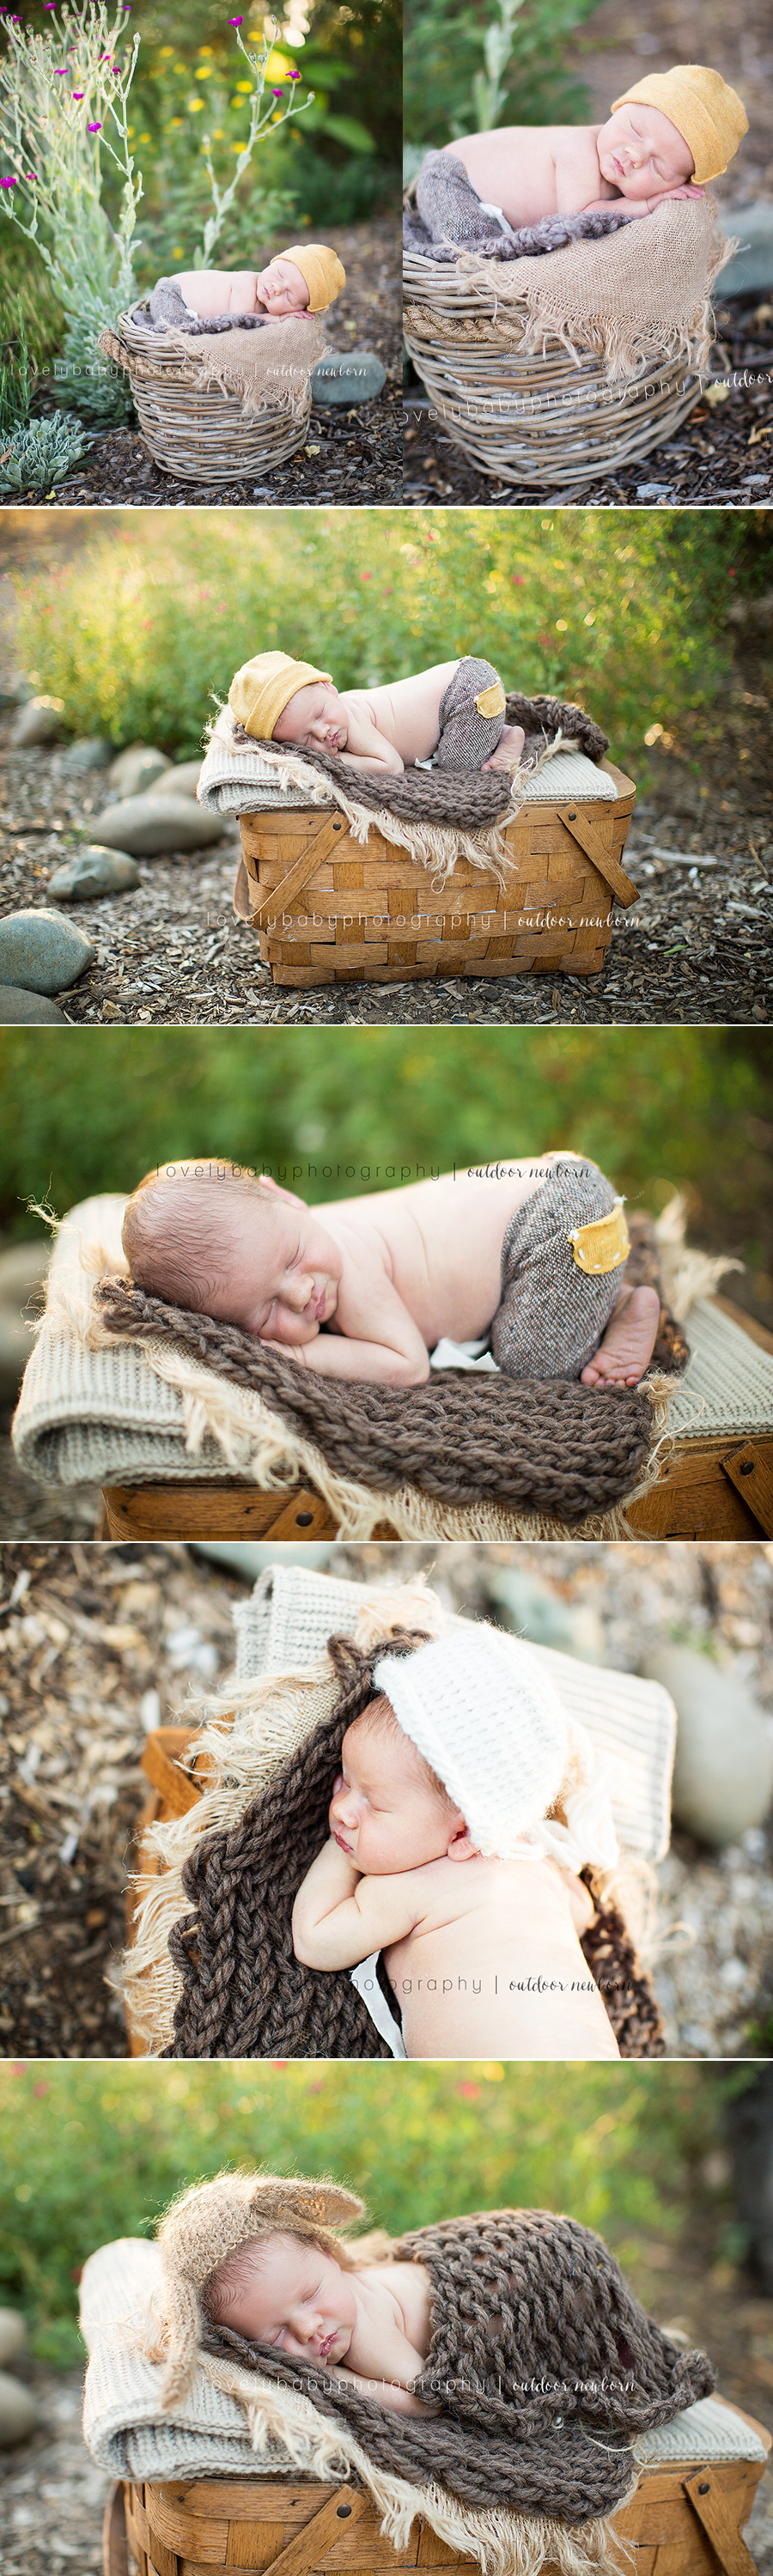 sacramento outdoor newborn boy photographer